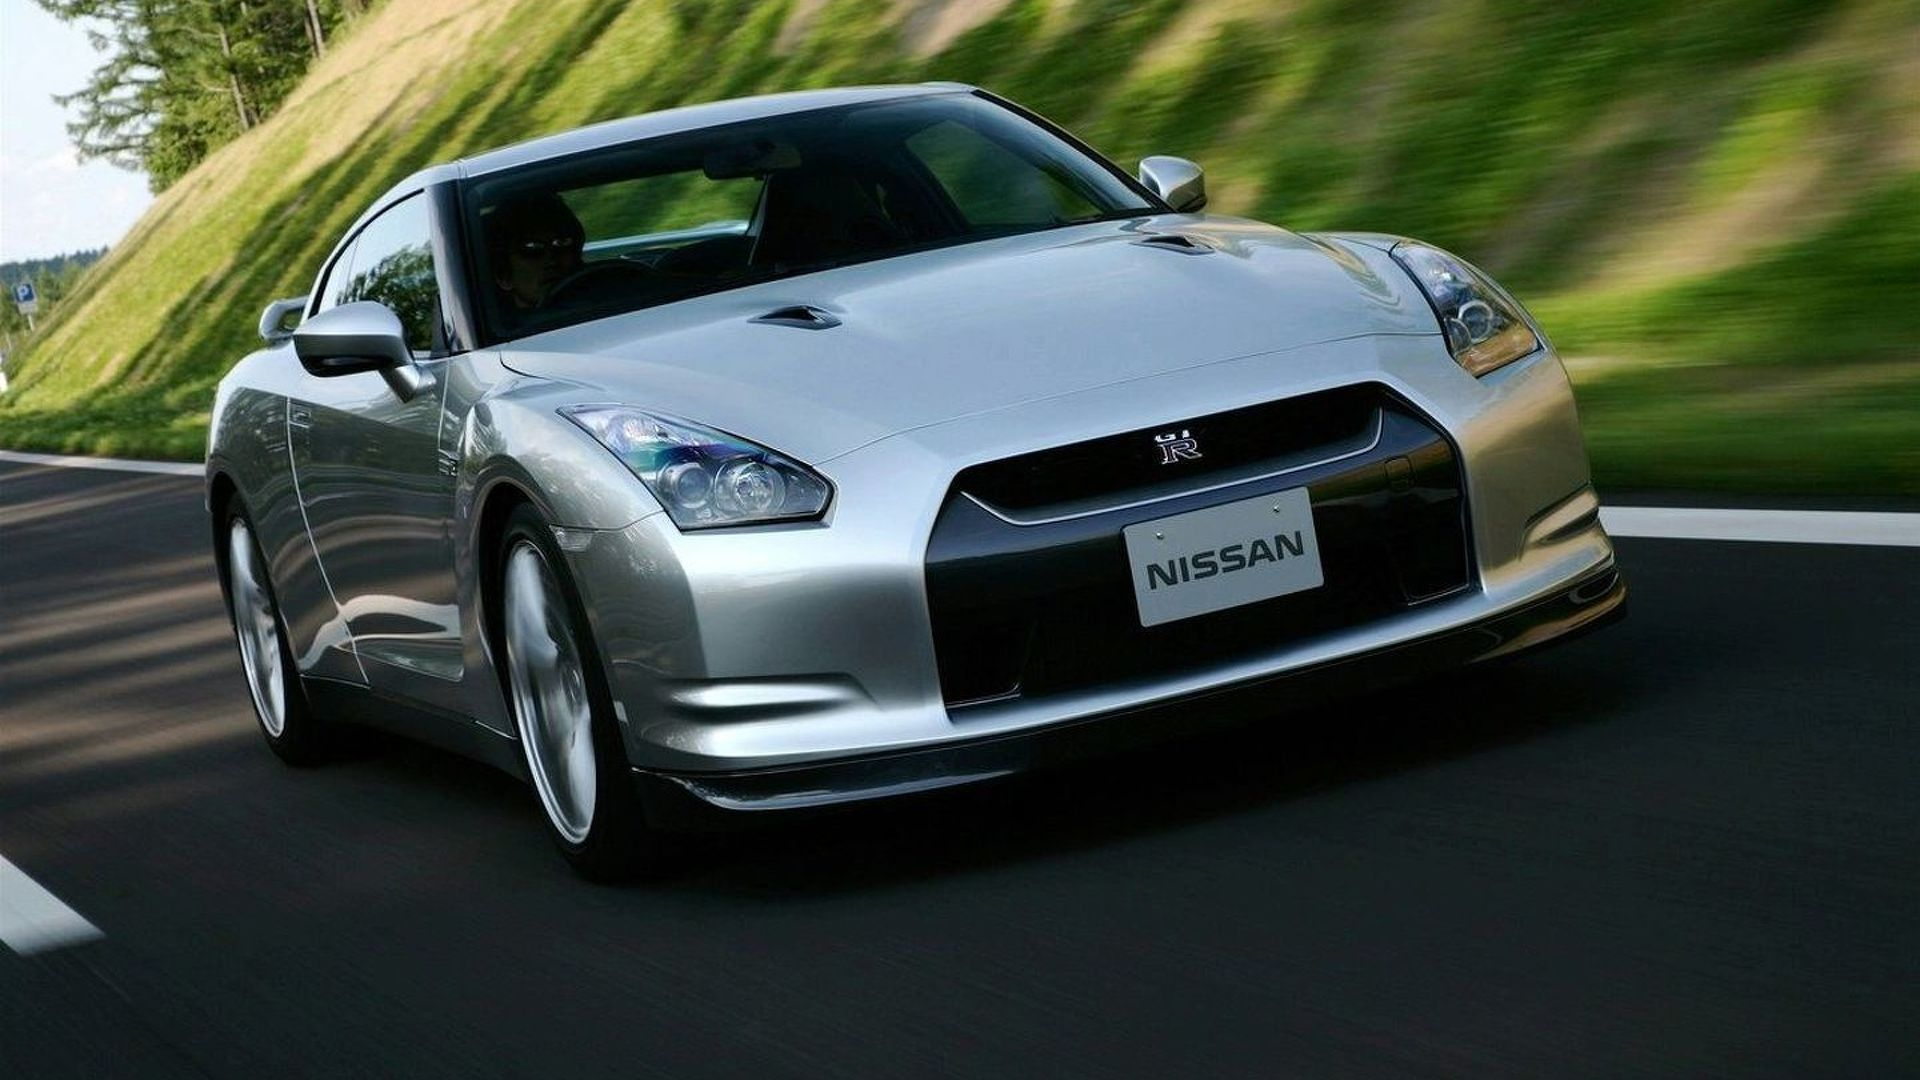 Nissan Responds to GT-R 'Ring Time Accusations